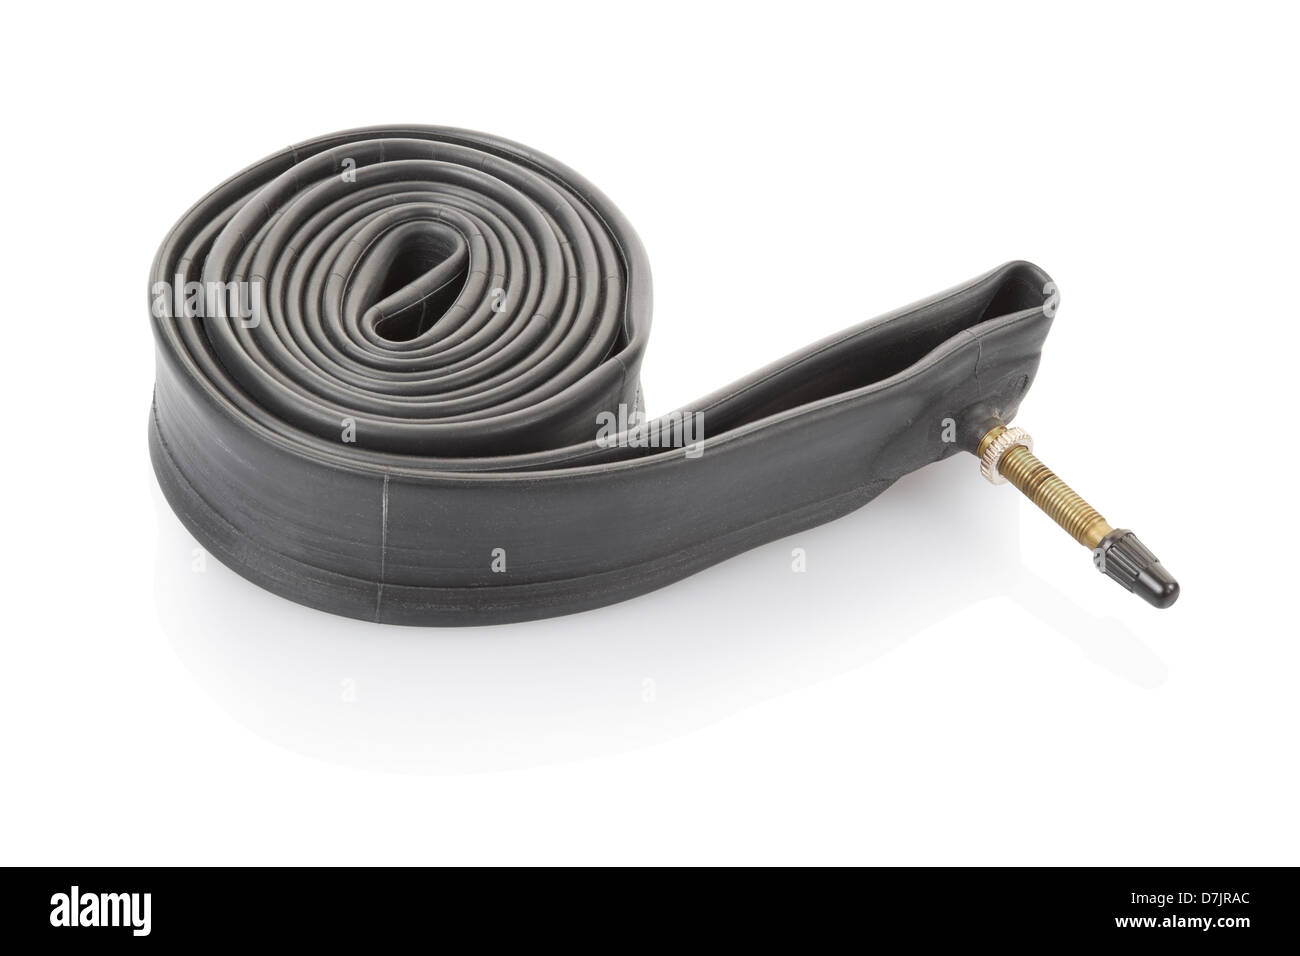 Inner tube for bicycle - Stock Image